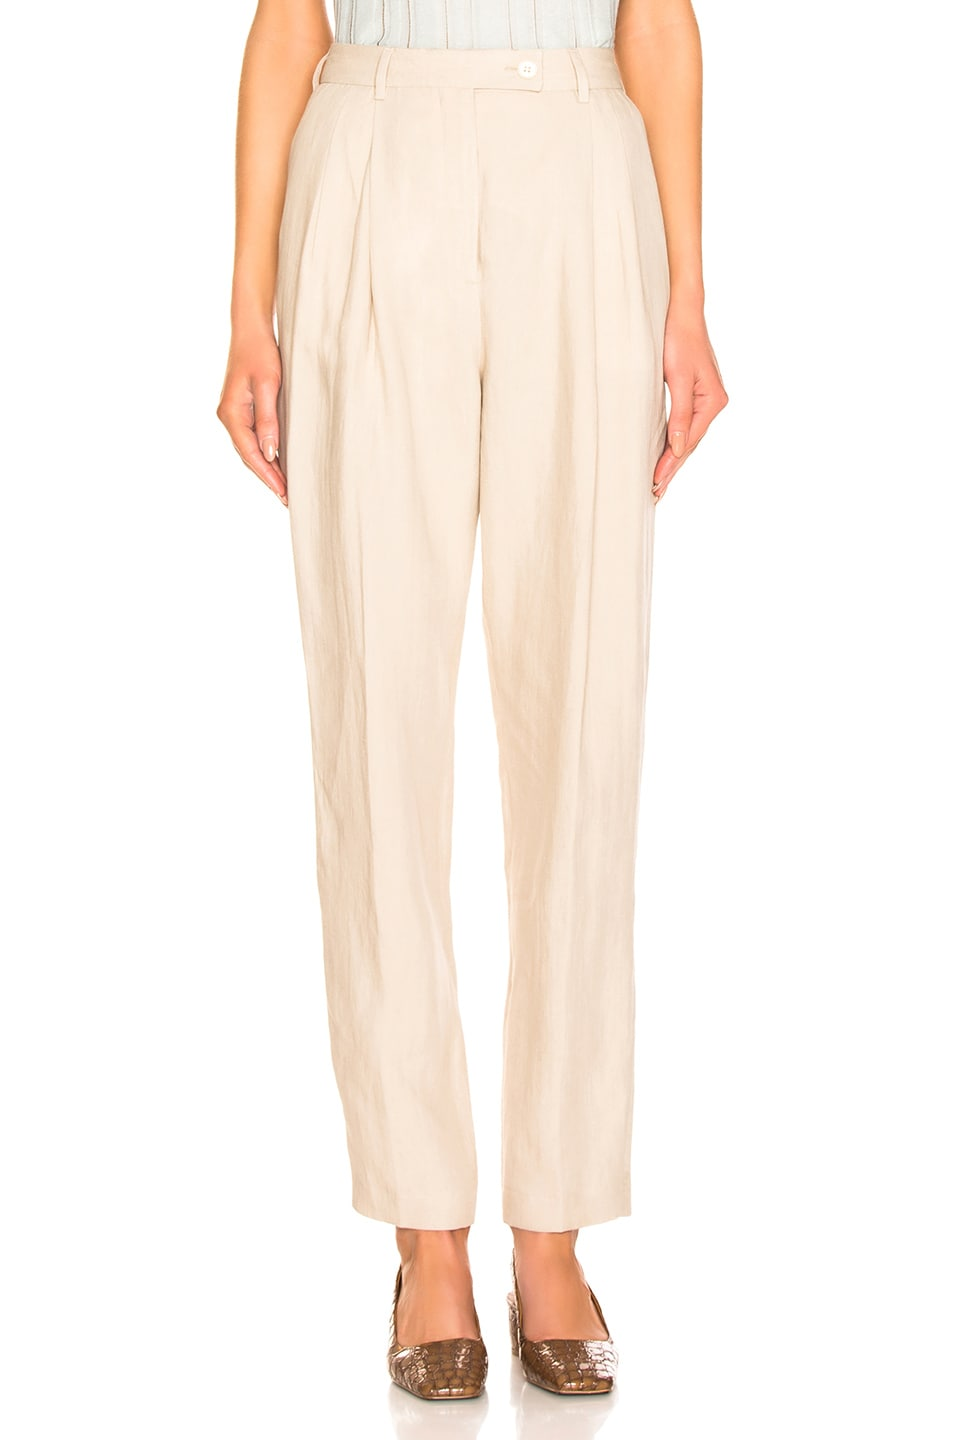 Image 1 of Acne Studios Pati Pant in Sand Beige